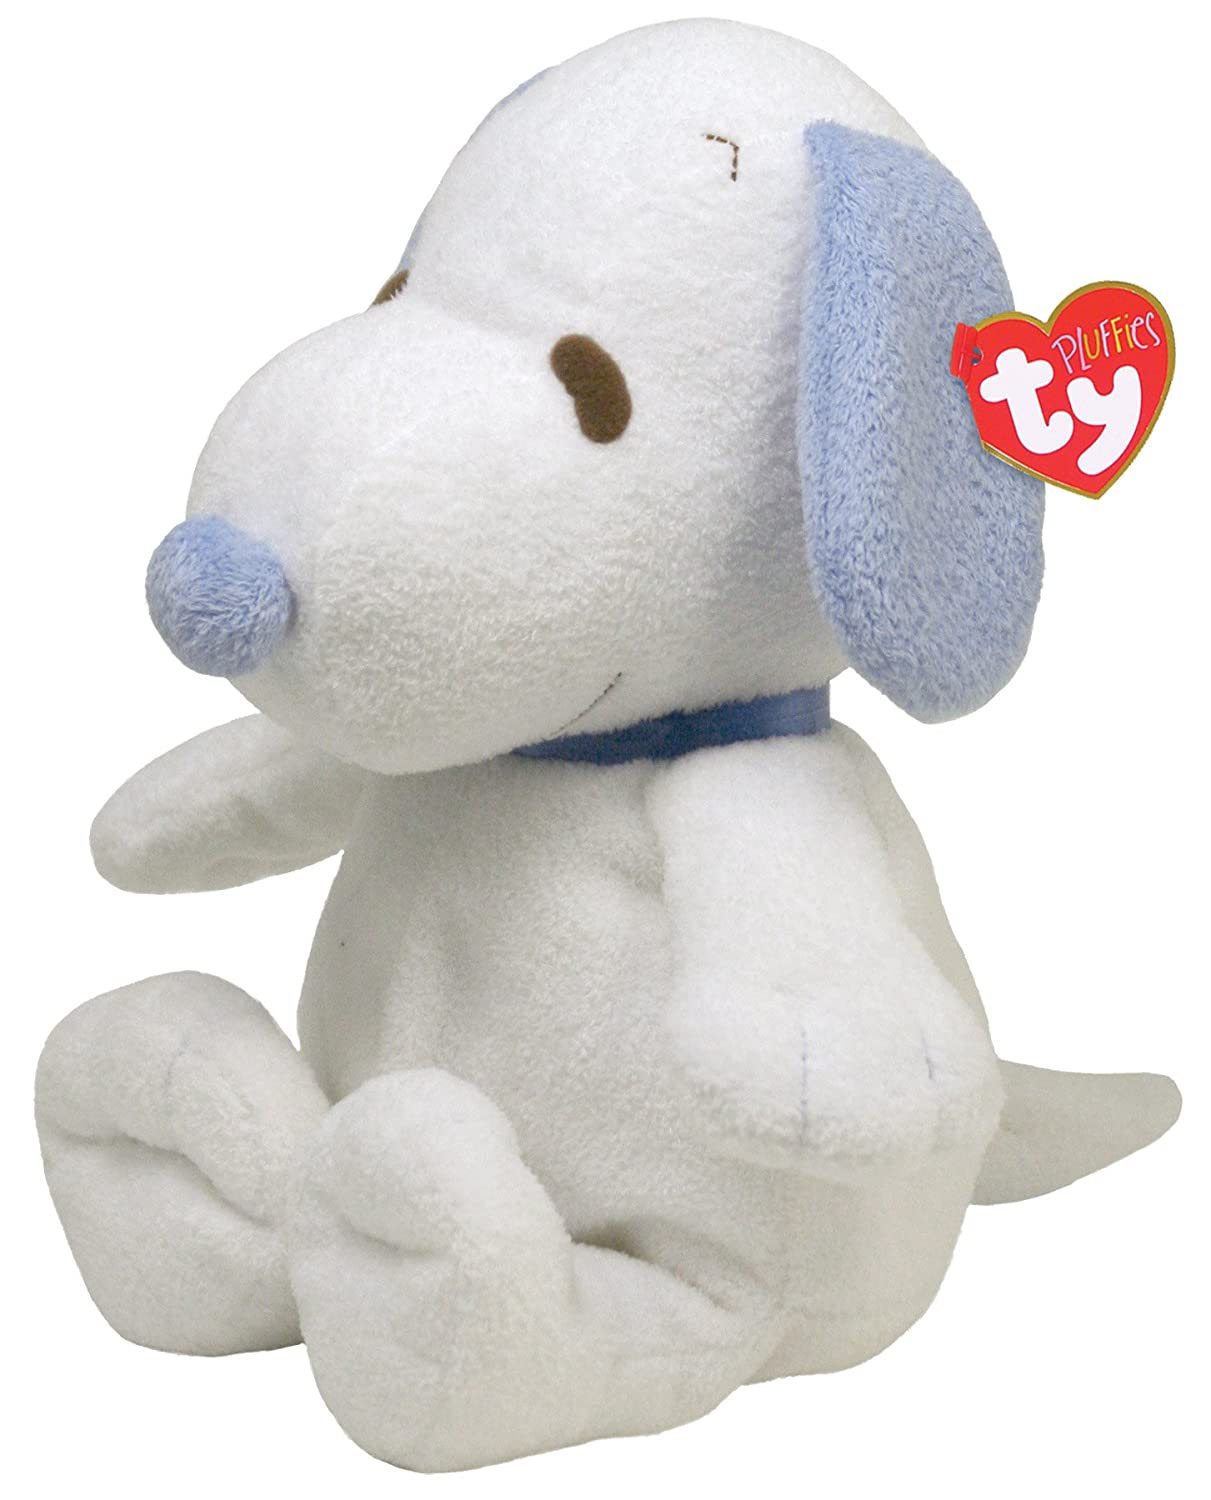 Amazon Com Ty Pluffies Snoopy White Blue Toys Games